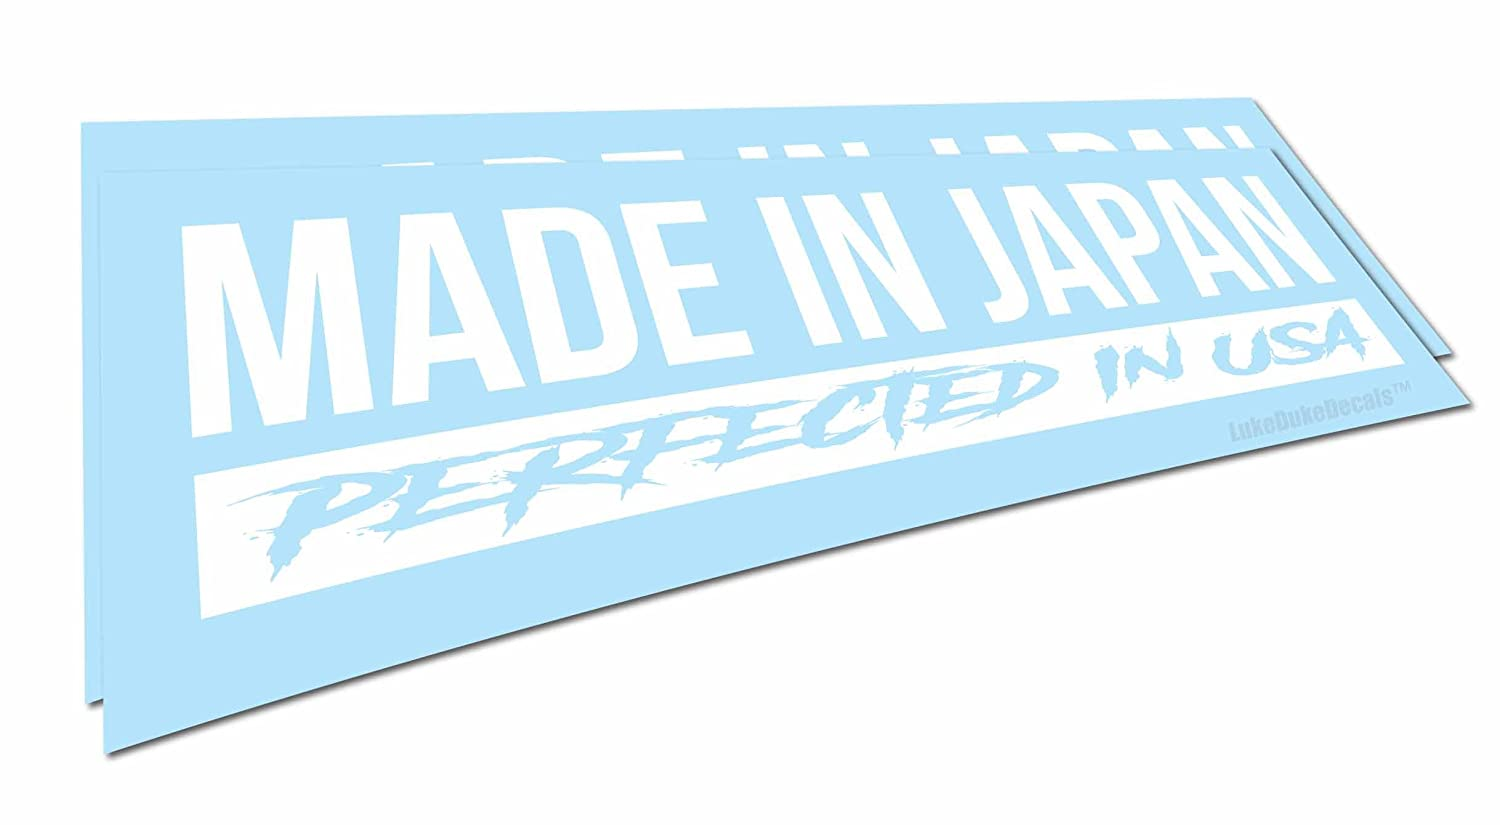 Made in japan perfected in usa decals funny jdm style car vinyl stickers 2 pack 8 x 2 each waterproof 8 year life will not fade